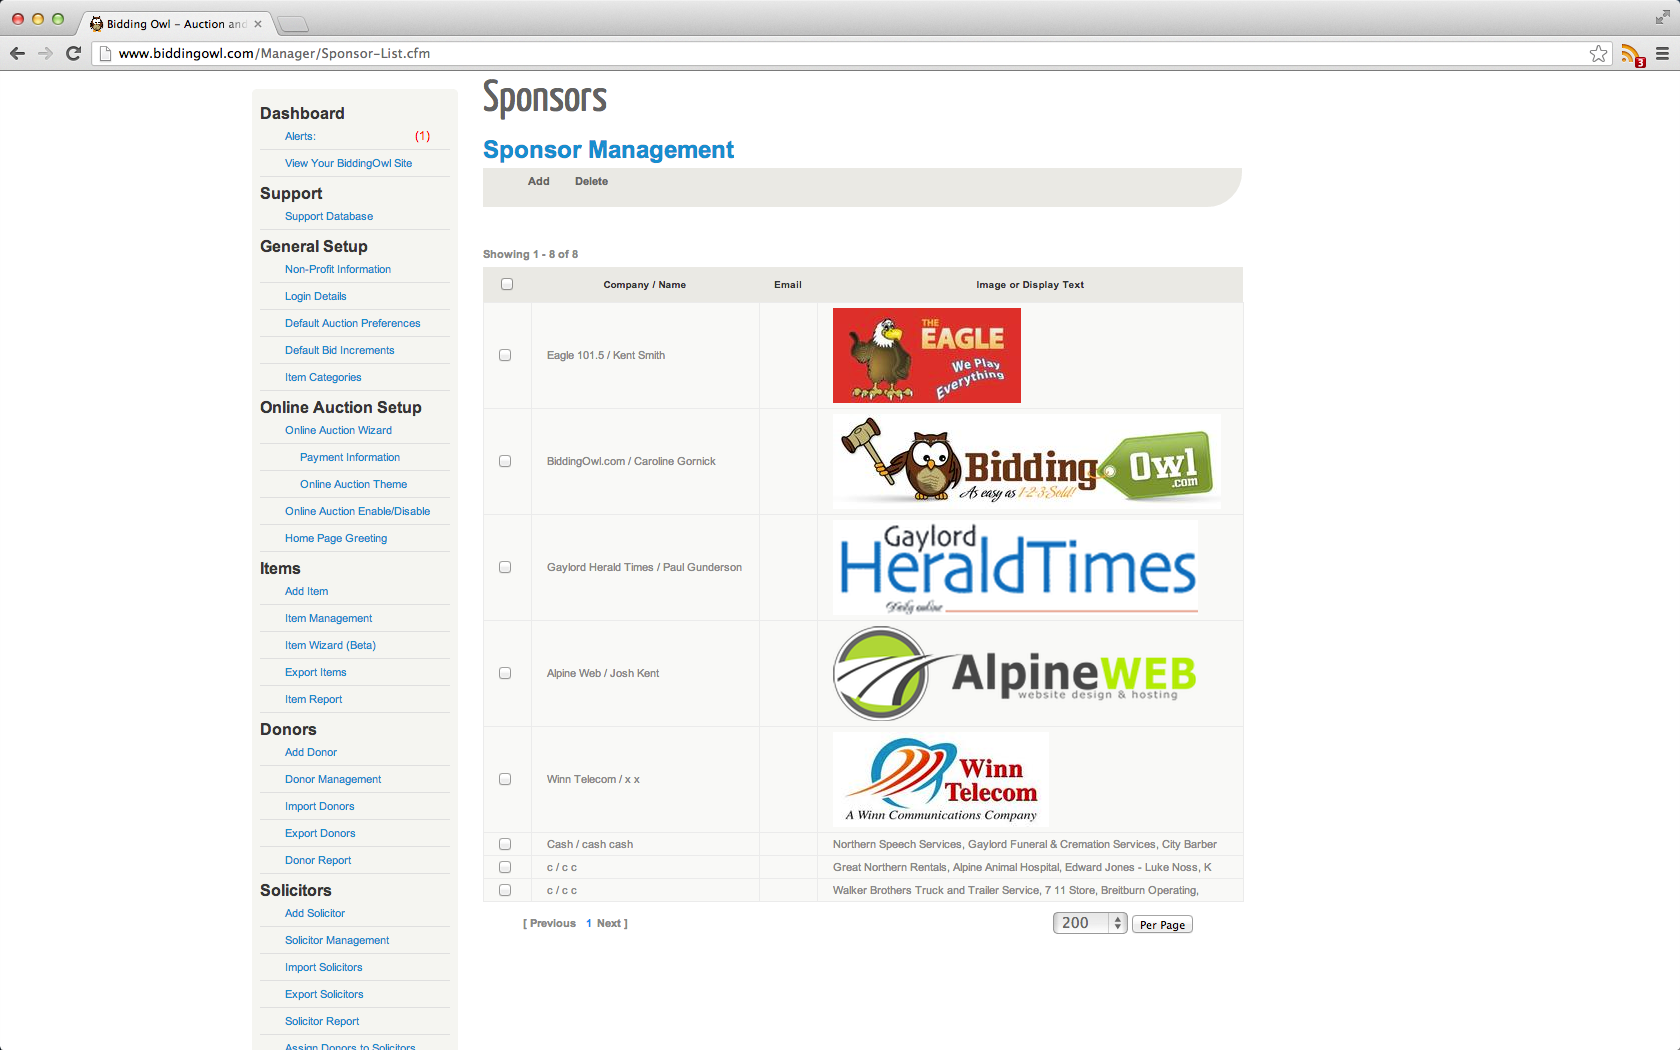 Up-sell your event through sponsorships that are displayed on your website